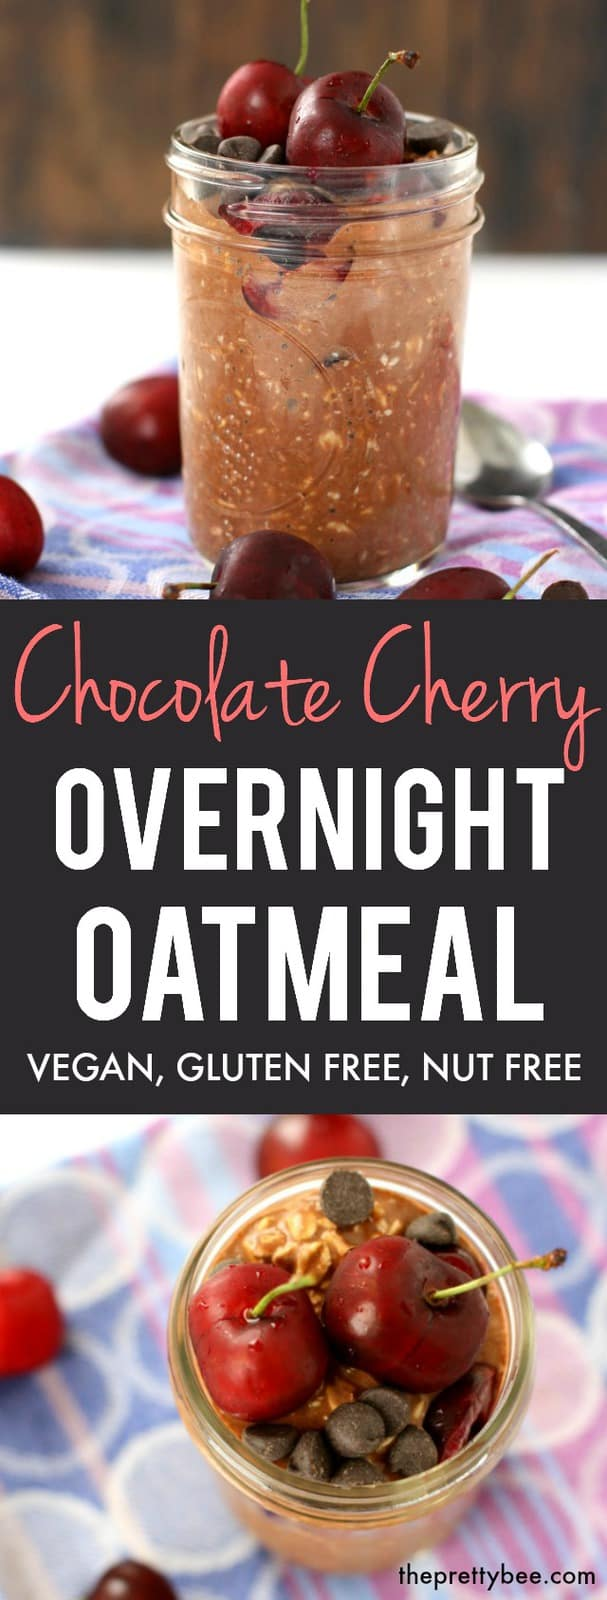 An easy and delicious recipe for chocolate cherry overnight oats. You'll love this healthy breakfast option for busy mornings! #vegan #plantbased #nutfree #glutenfree